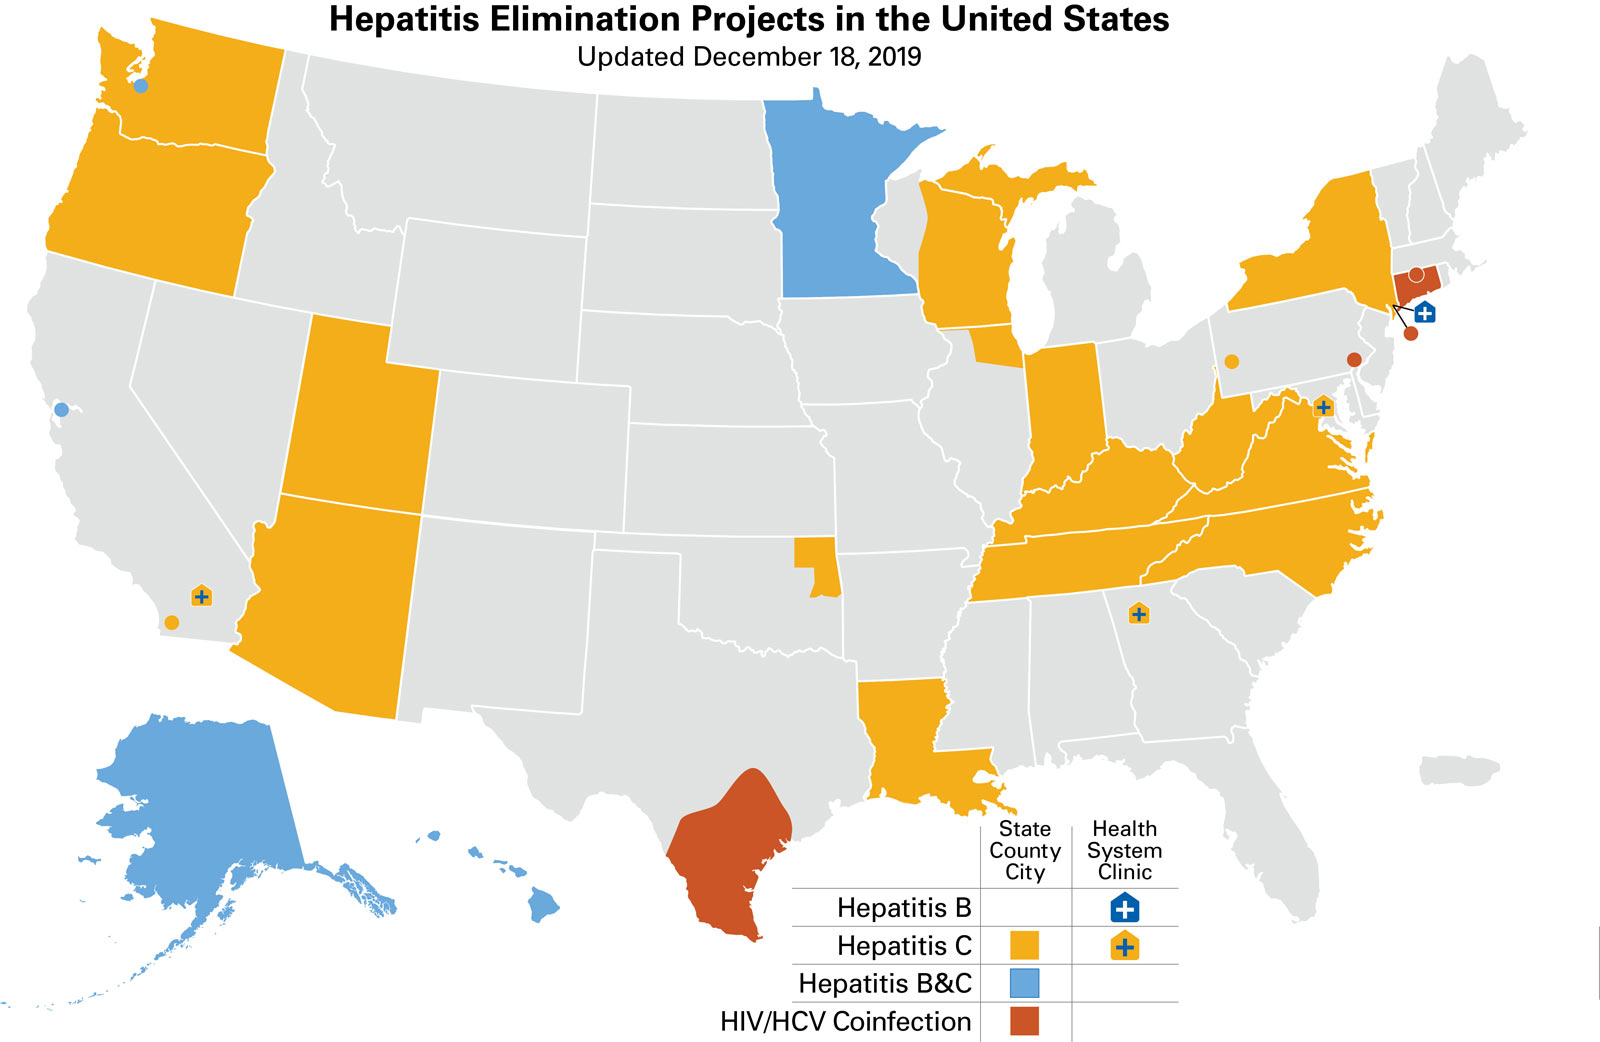 Mapping Hepais Elimination in Action | HHS.gov on oc map, vha map, lebanon va map, veterans affairs map, goog map, hampton va medical center map, foshan china map, vamc map, stp map, regions of america map, waco texas map, va hospital west los angeles map, hepatitis c prevalence united states map, rok map, pccc map, ma map,